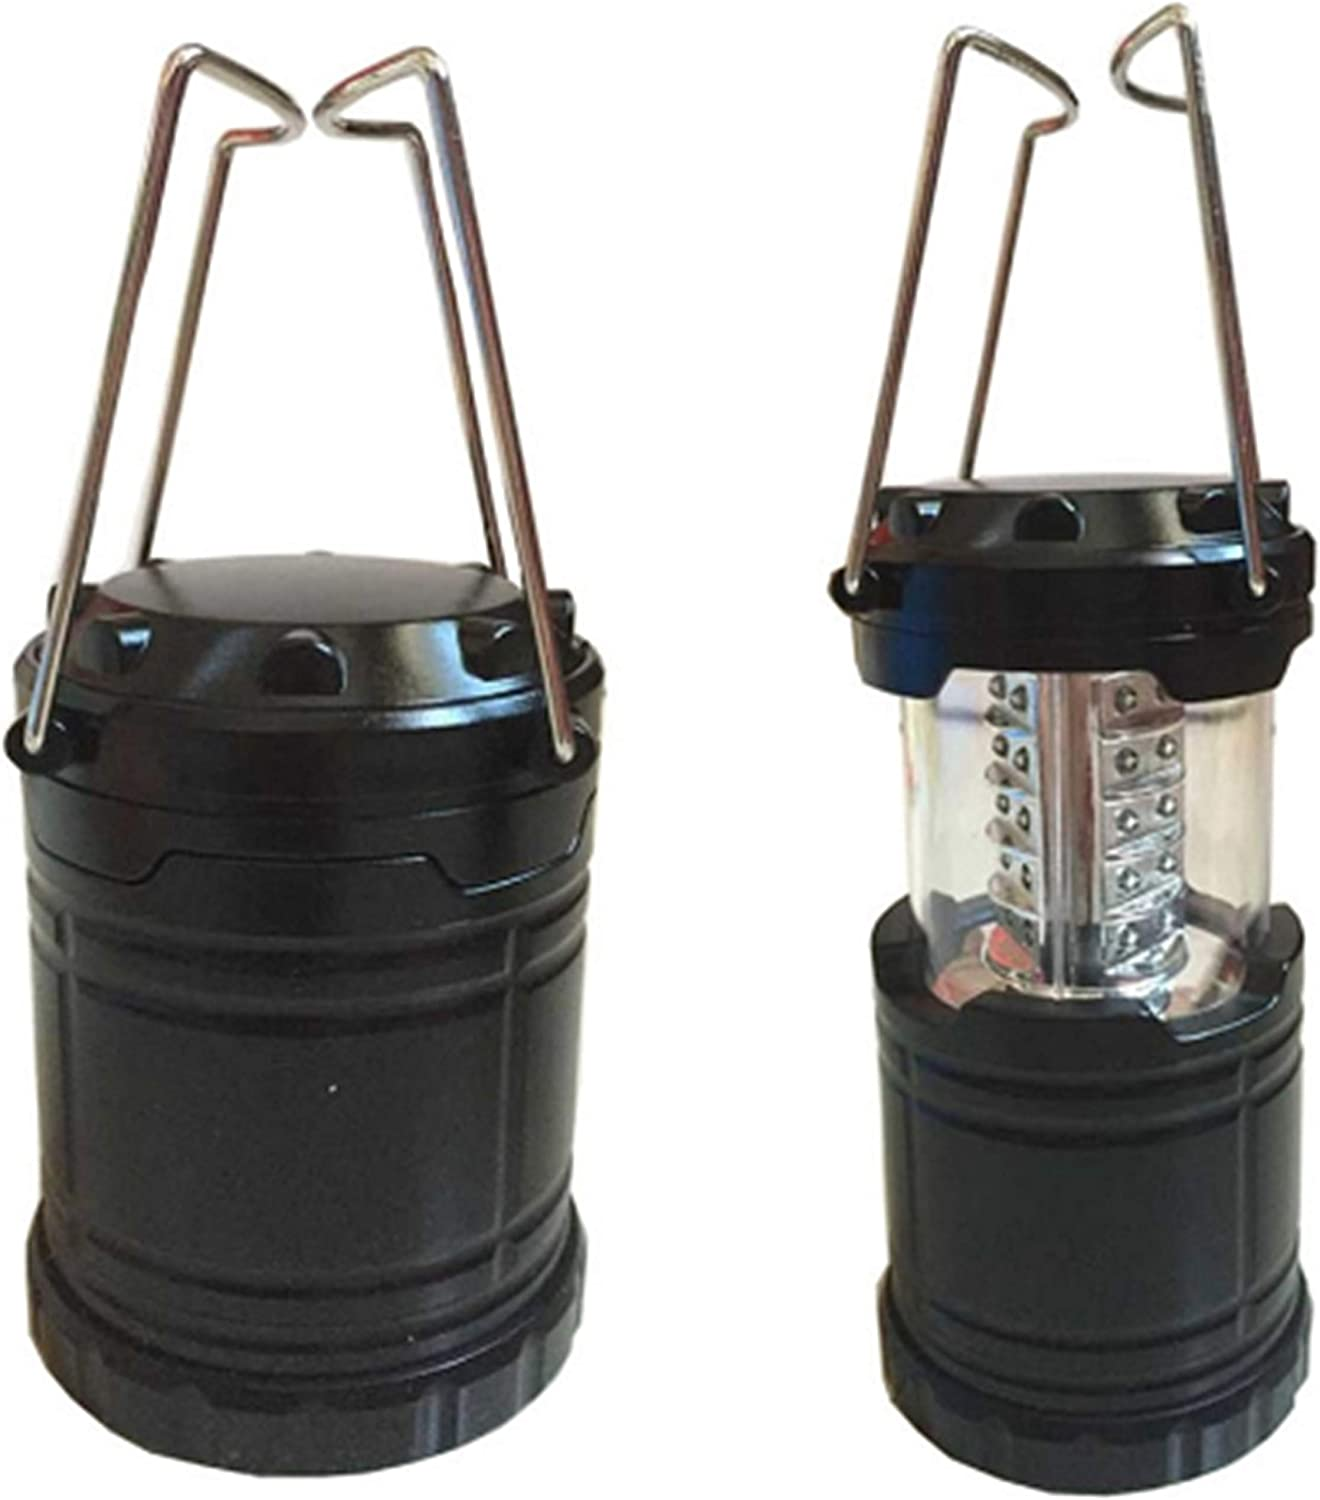 LIADO Outdoors LED Camping Lantern Portable with Auto On Off Function and Collapsible and Battery Operated for Outdoors, Camping, Hiking, Fishing, Collapsible, Black